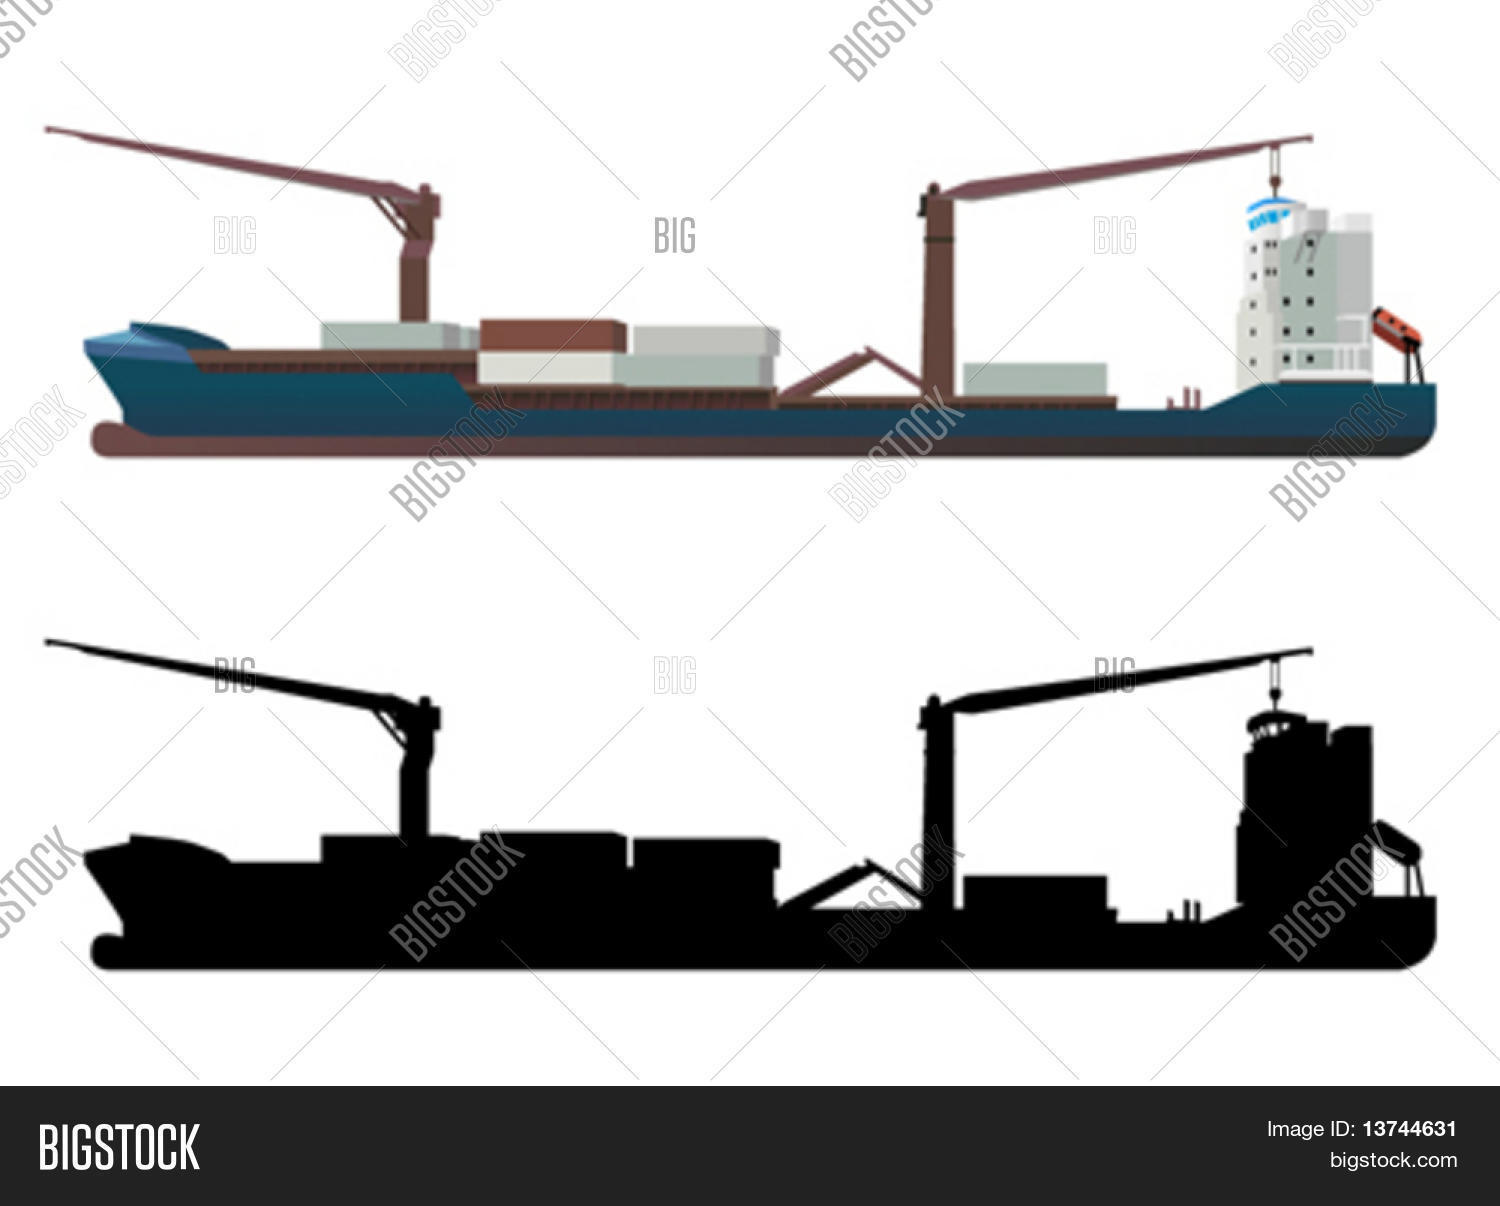 hight resolution of container ship vector